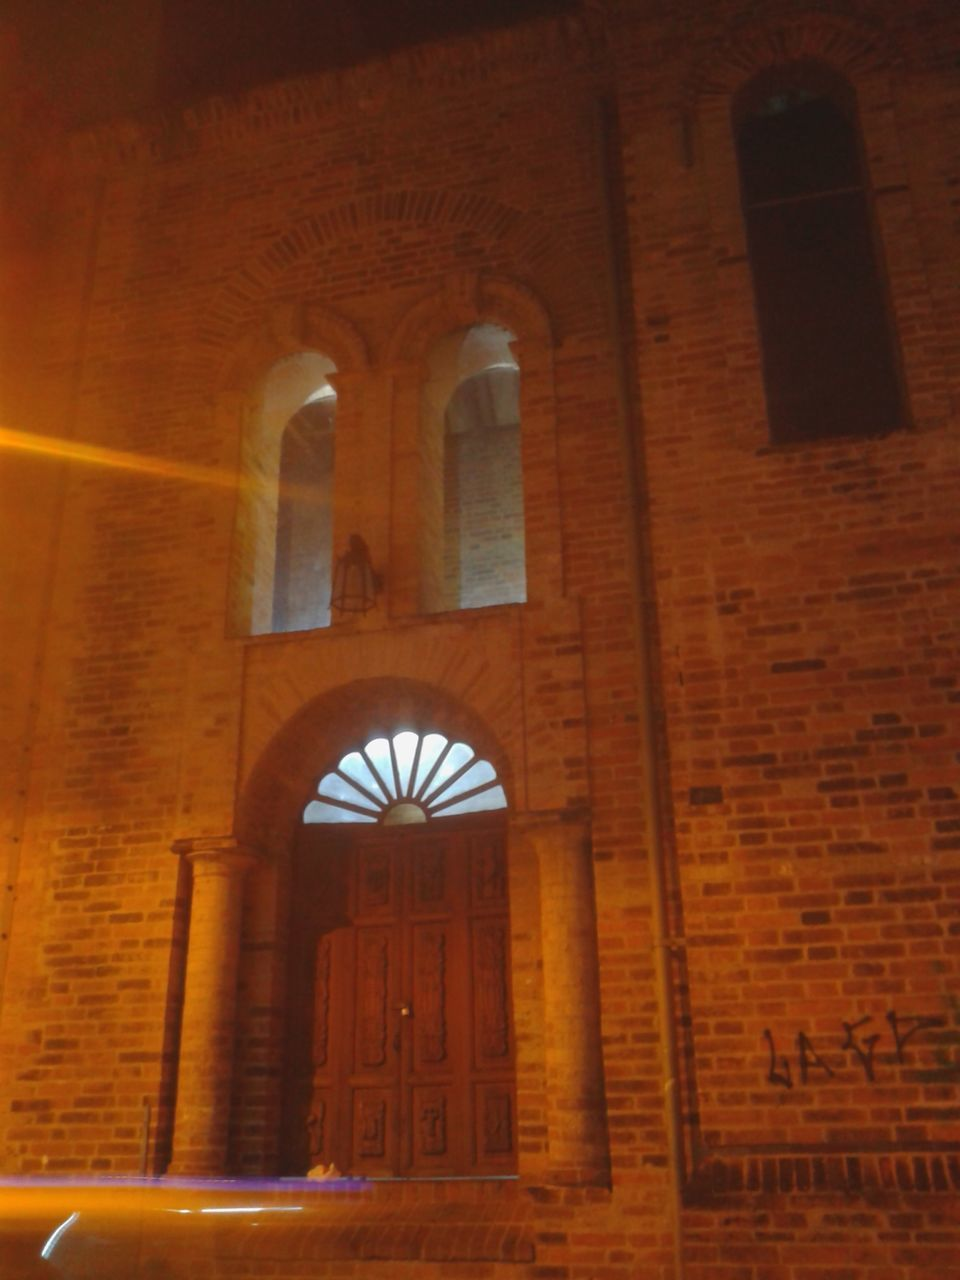 architecture, built structure, arch, window, religion, place of worship, history, building exterior, no people, indoors, spirituality, day, illuminated